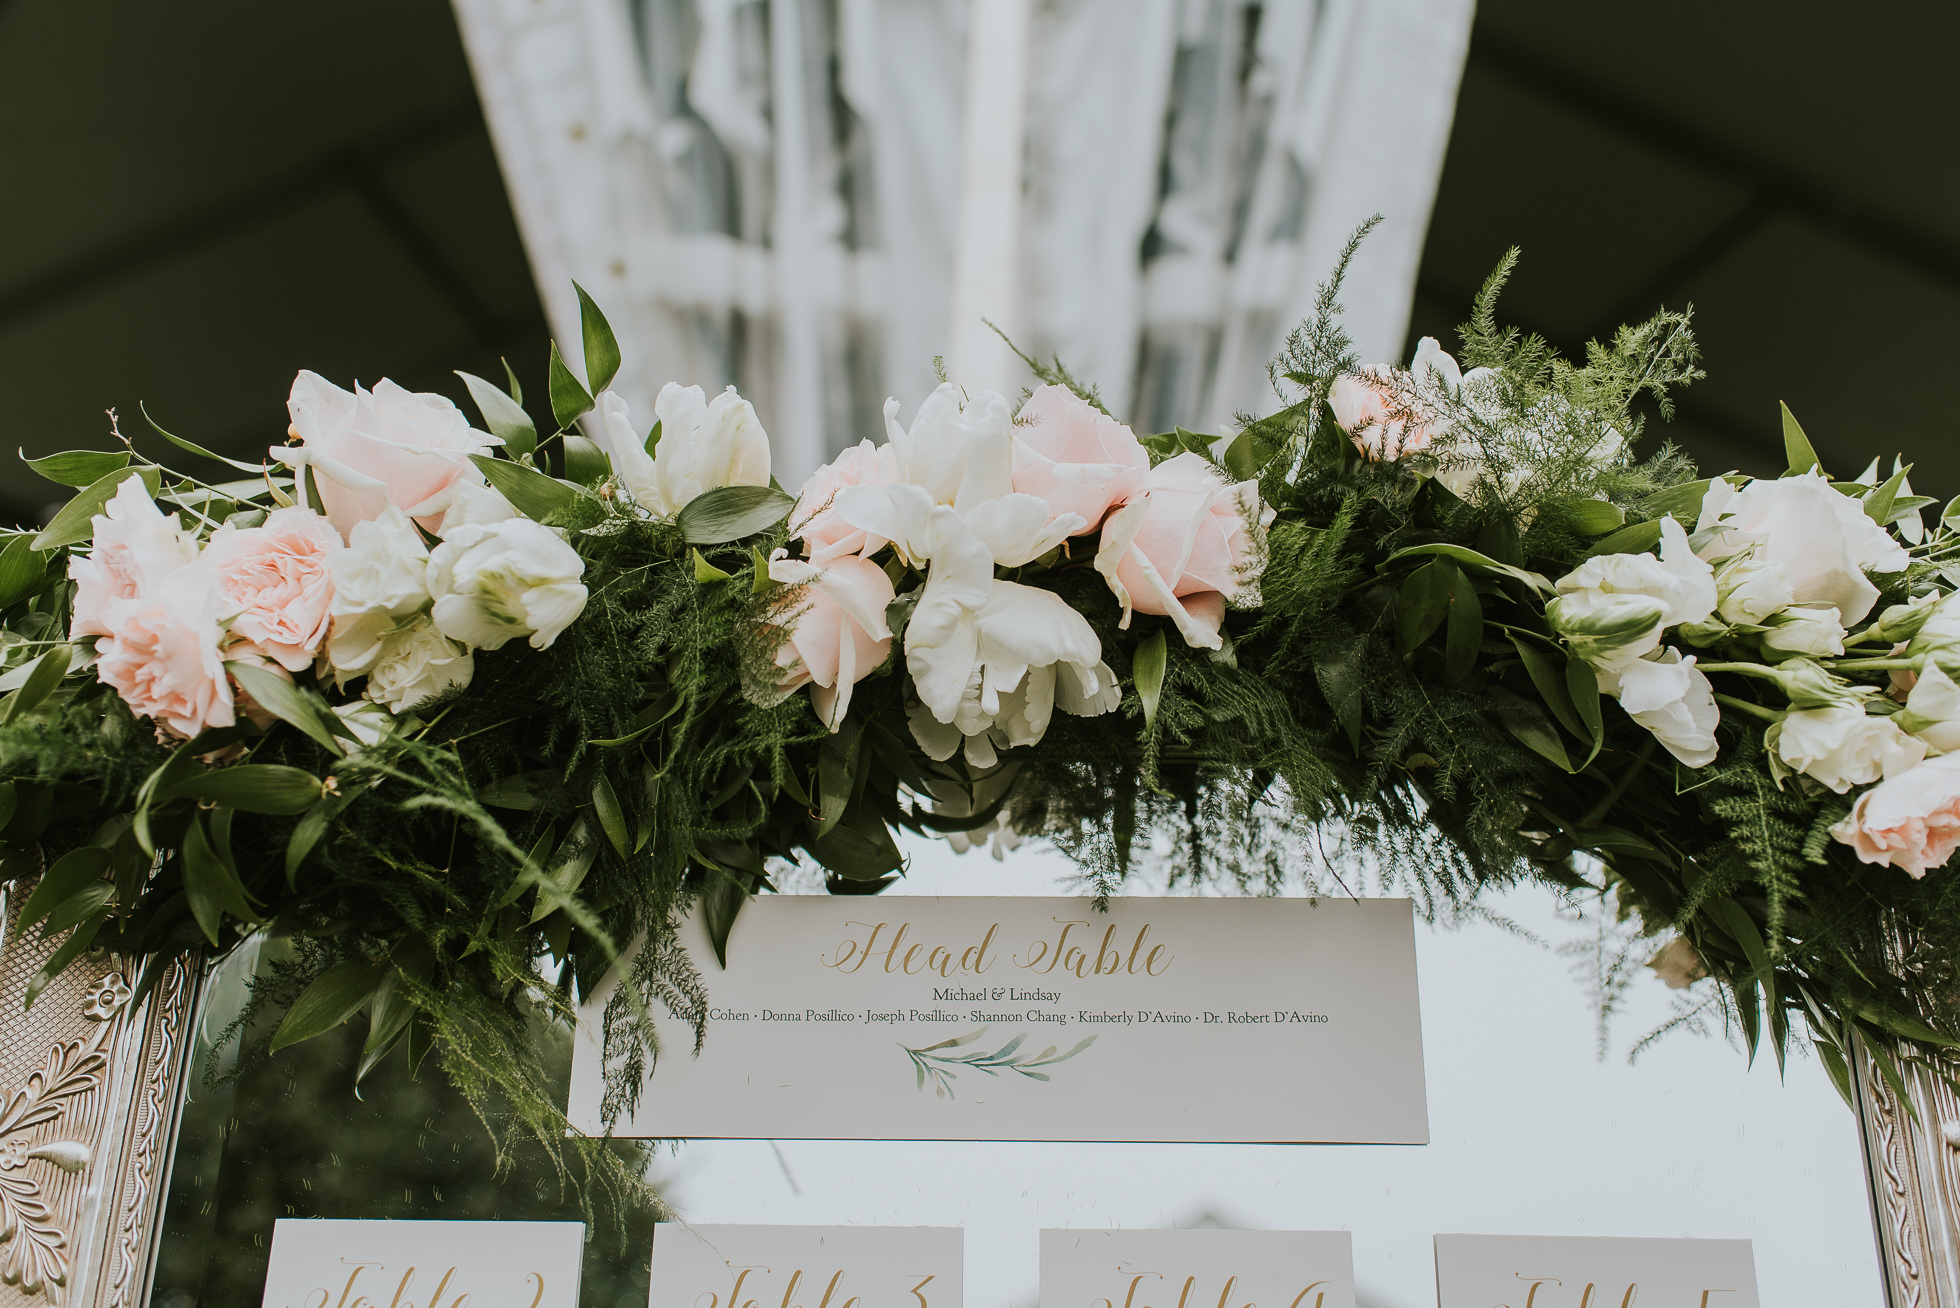 mirror wedding seating charts Long Island